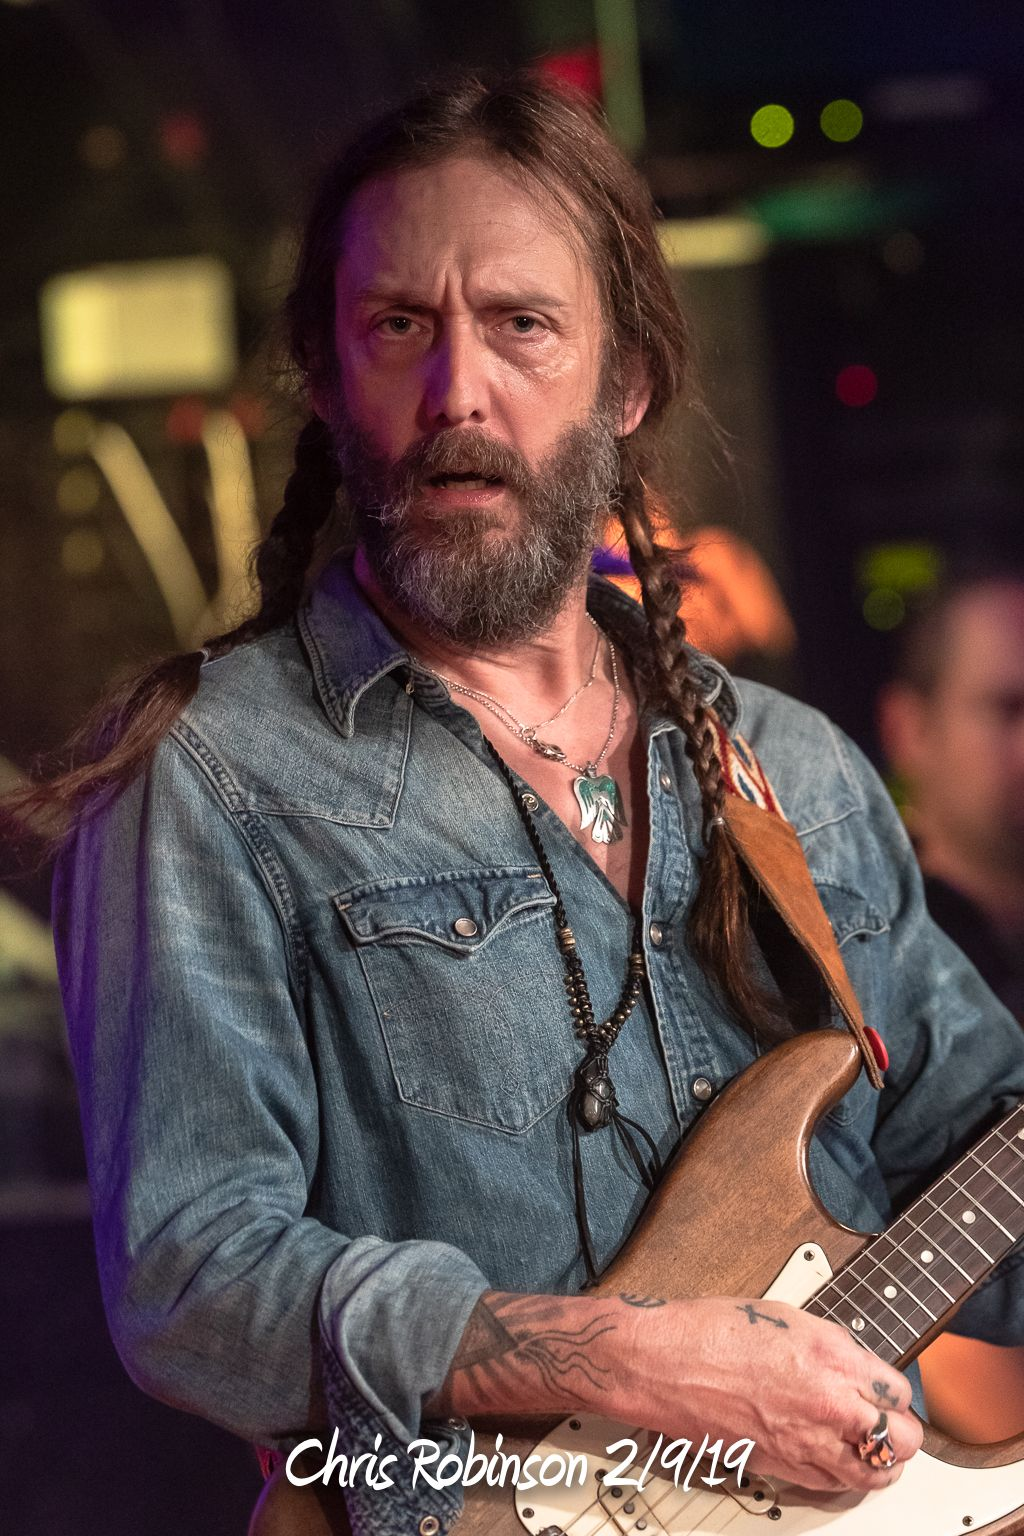 Chris Robinson 2/9/19